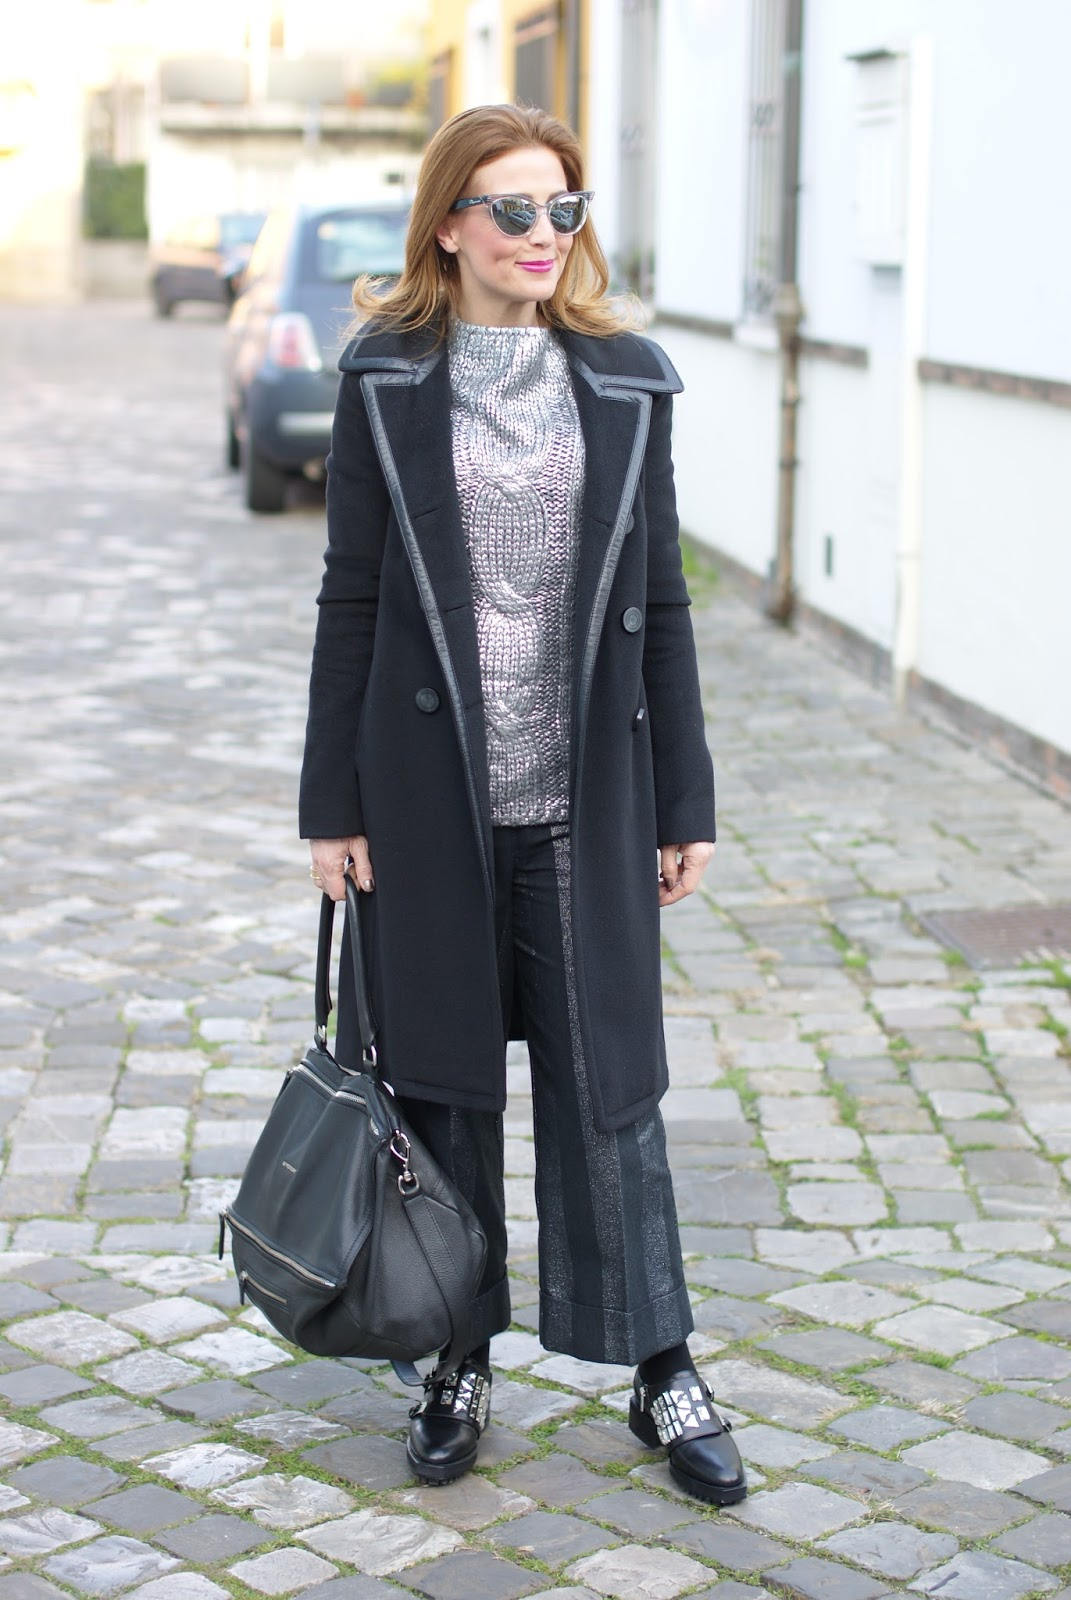 Balenciaga black coat with leather trim, black and silver look on Fashion and Cookies fashion blog, fashion blogger style